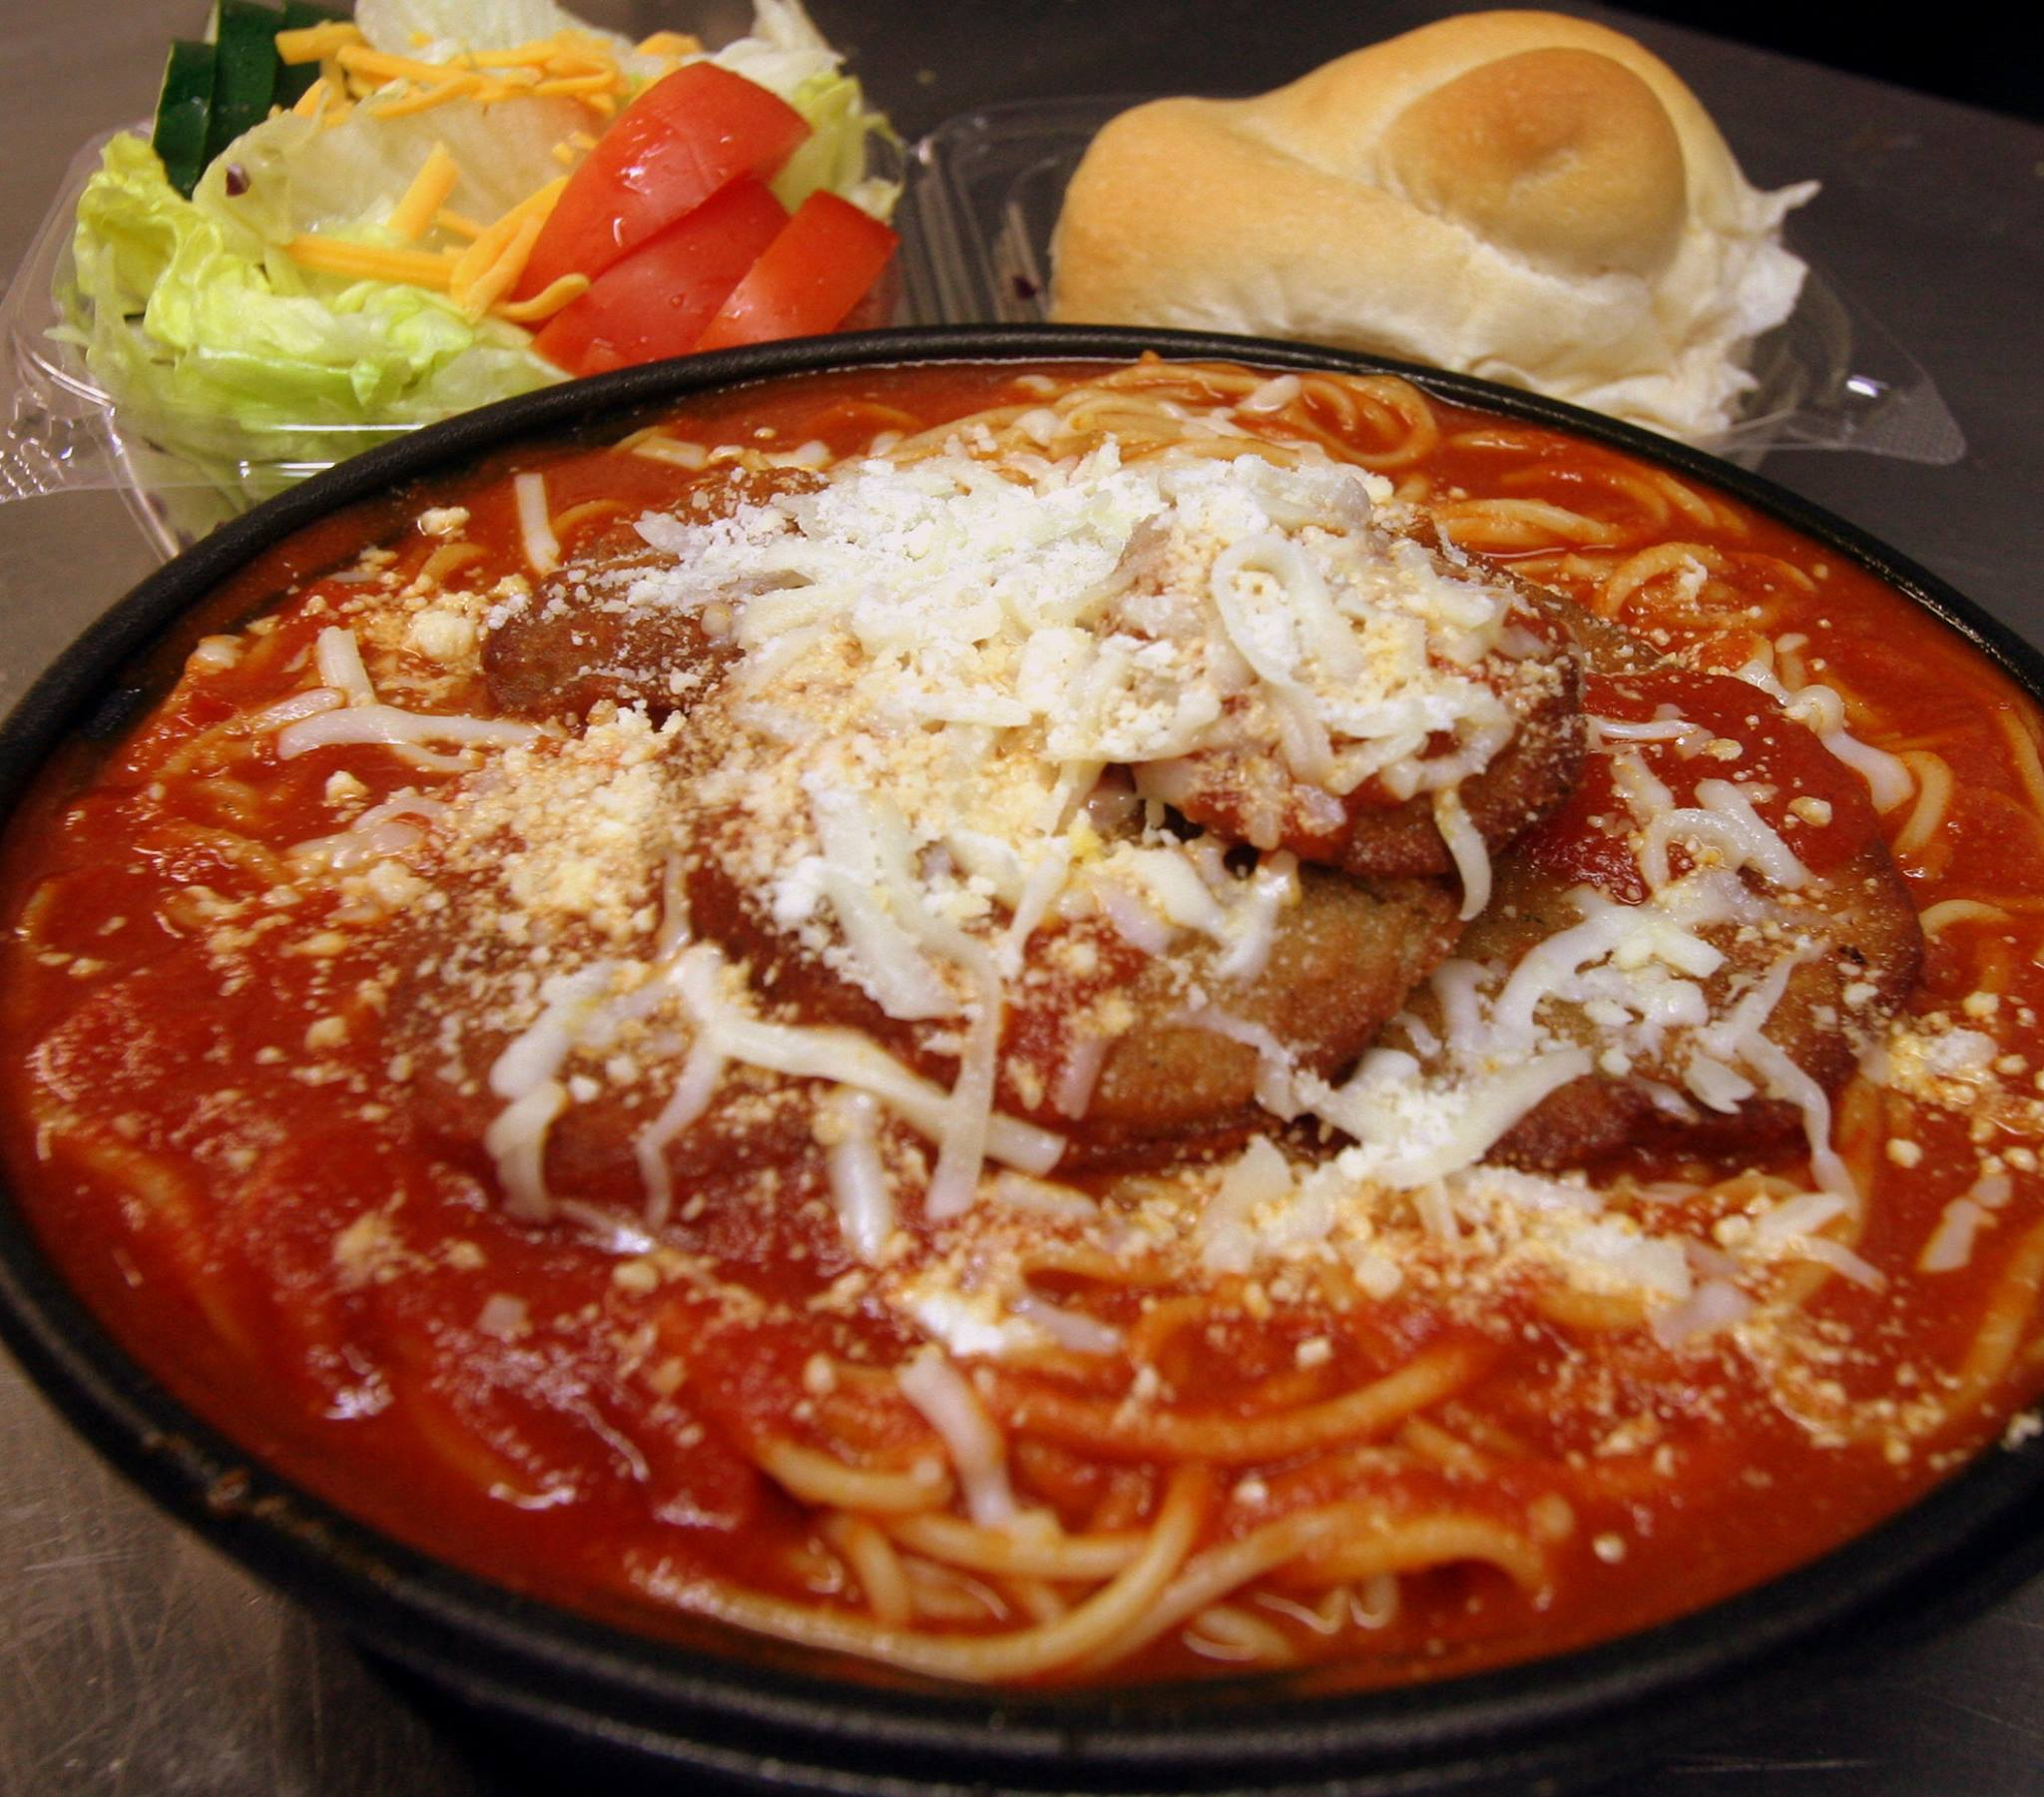 Catering Special - Pasta Dinner $10.99 Per PersonPasta with sauce, meatballs, sausage, bread/butter, salad and silverware included.